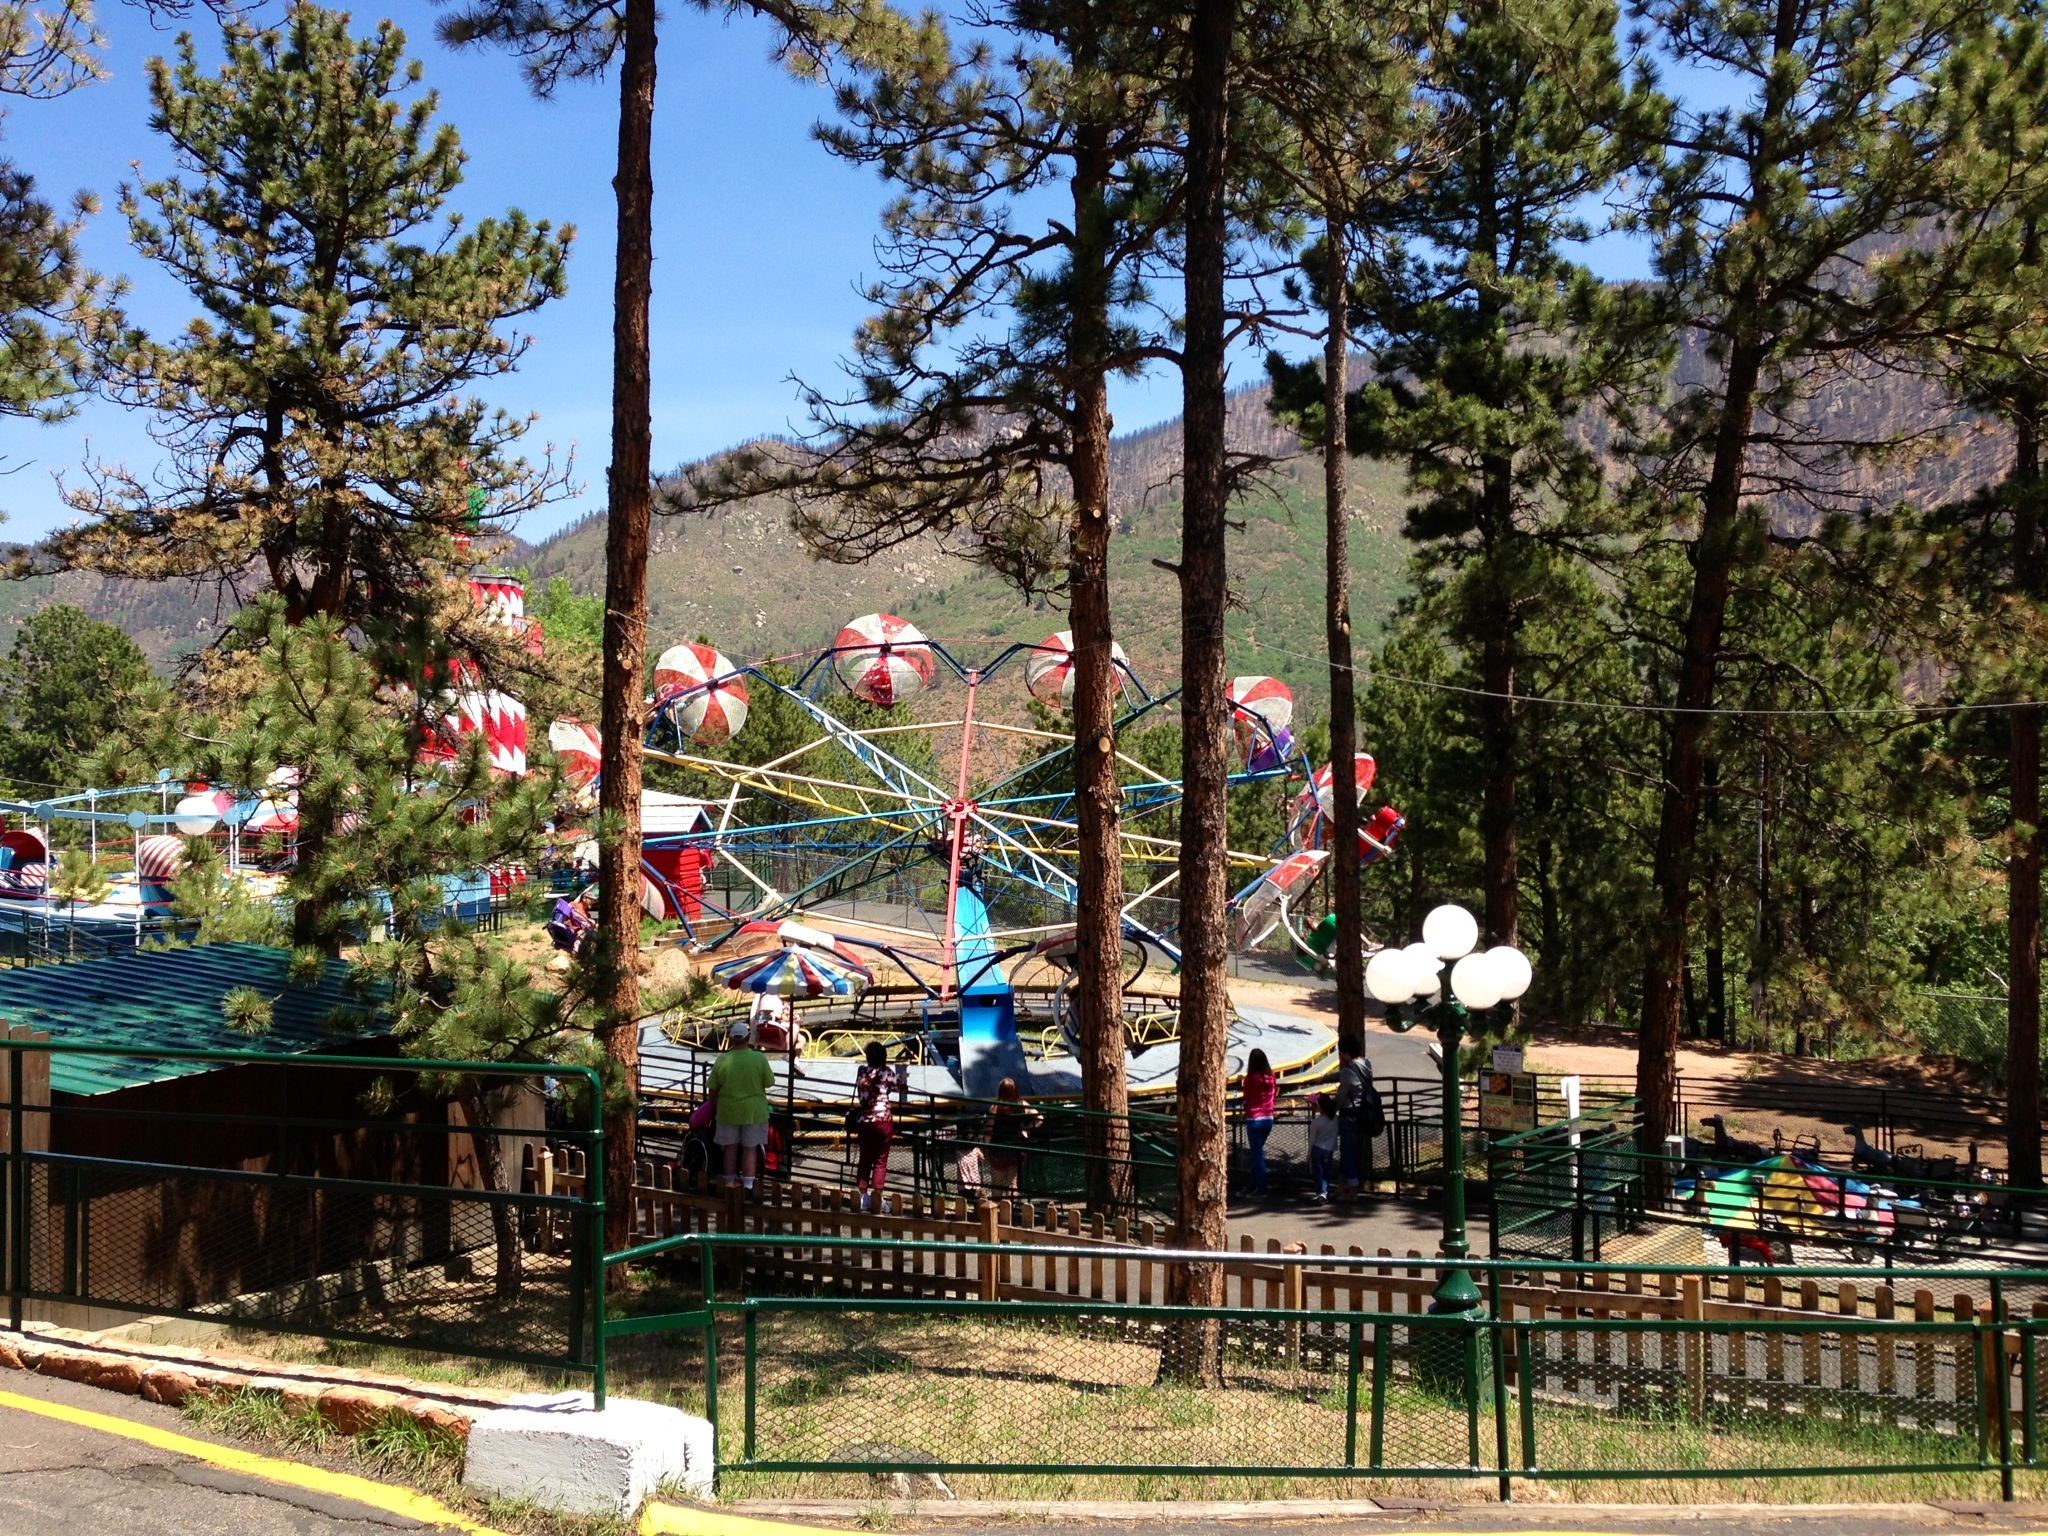 Christmas Theme Park.It S Christmas All Year Round At Our Outdoor Mountain Theme